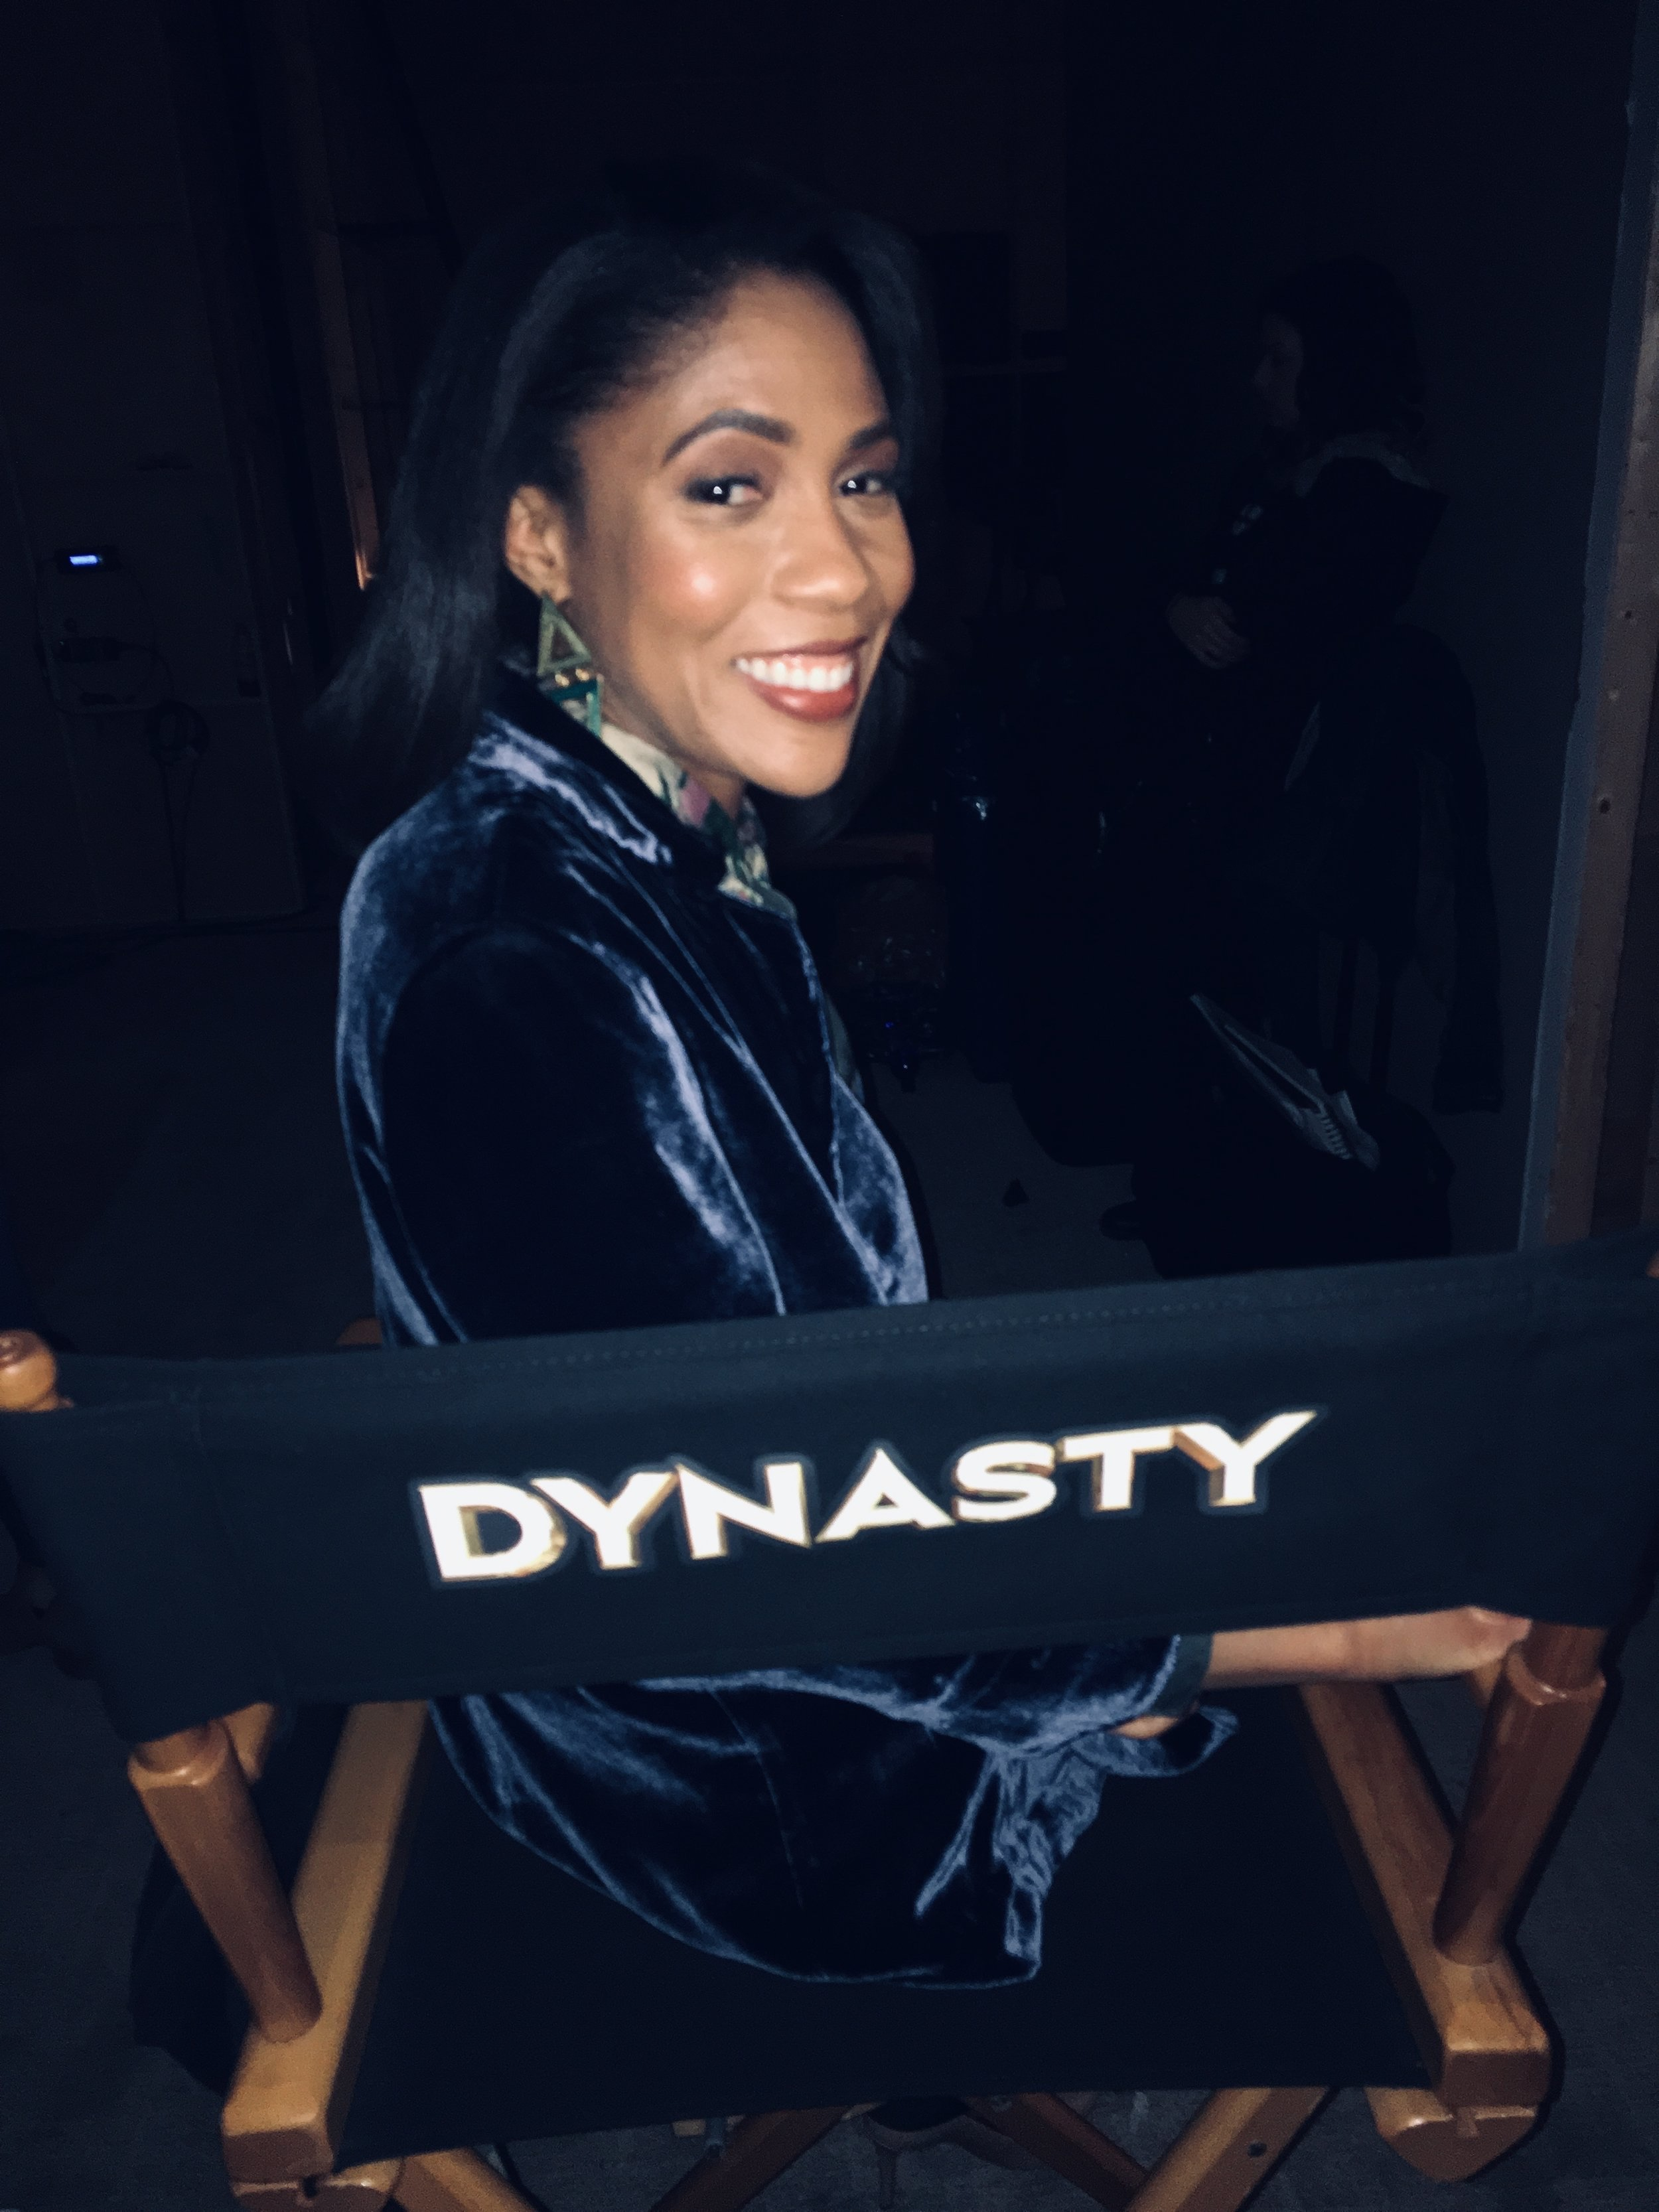 On the set of Dynasty.